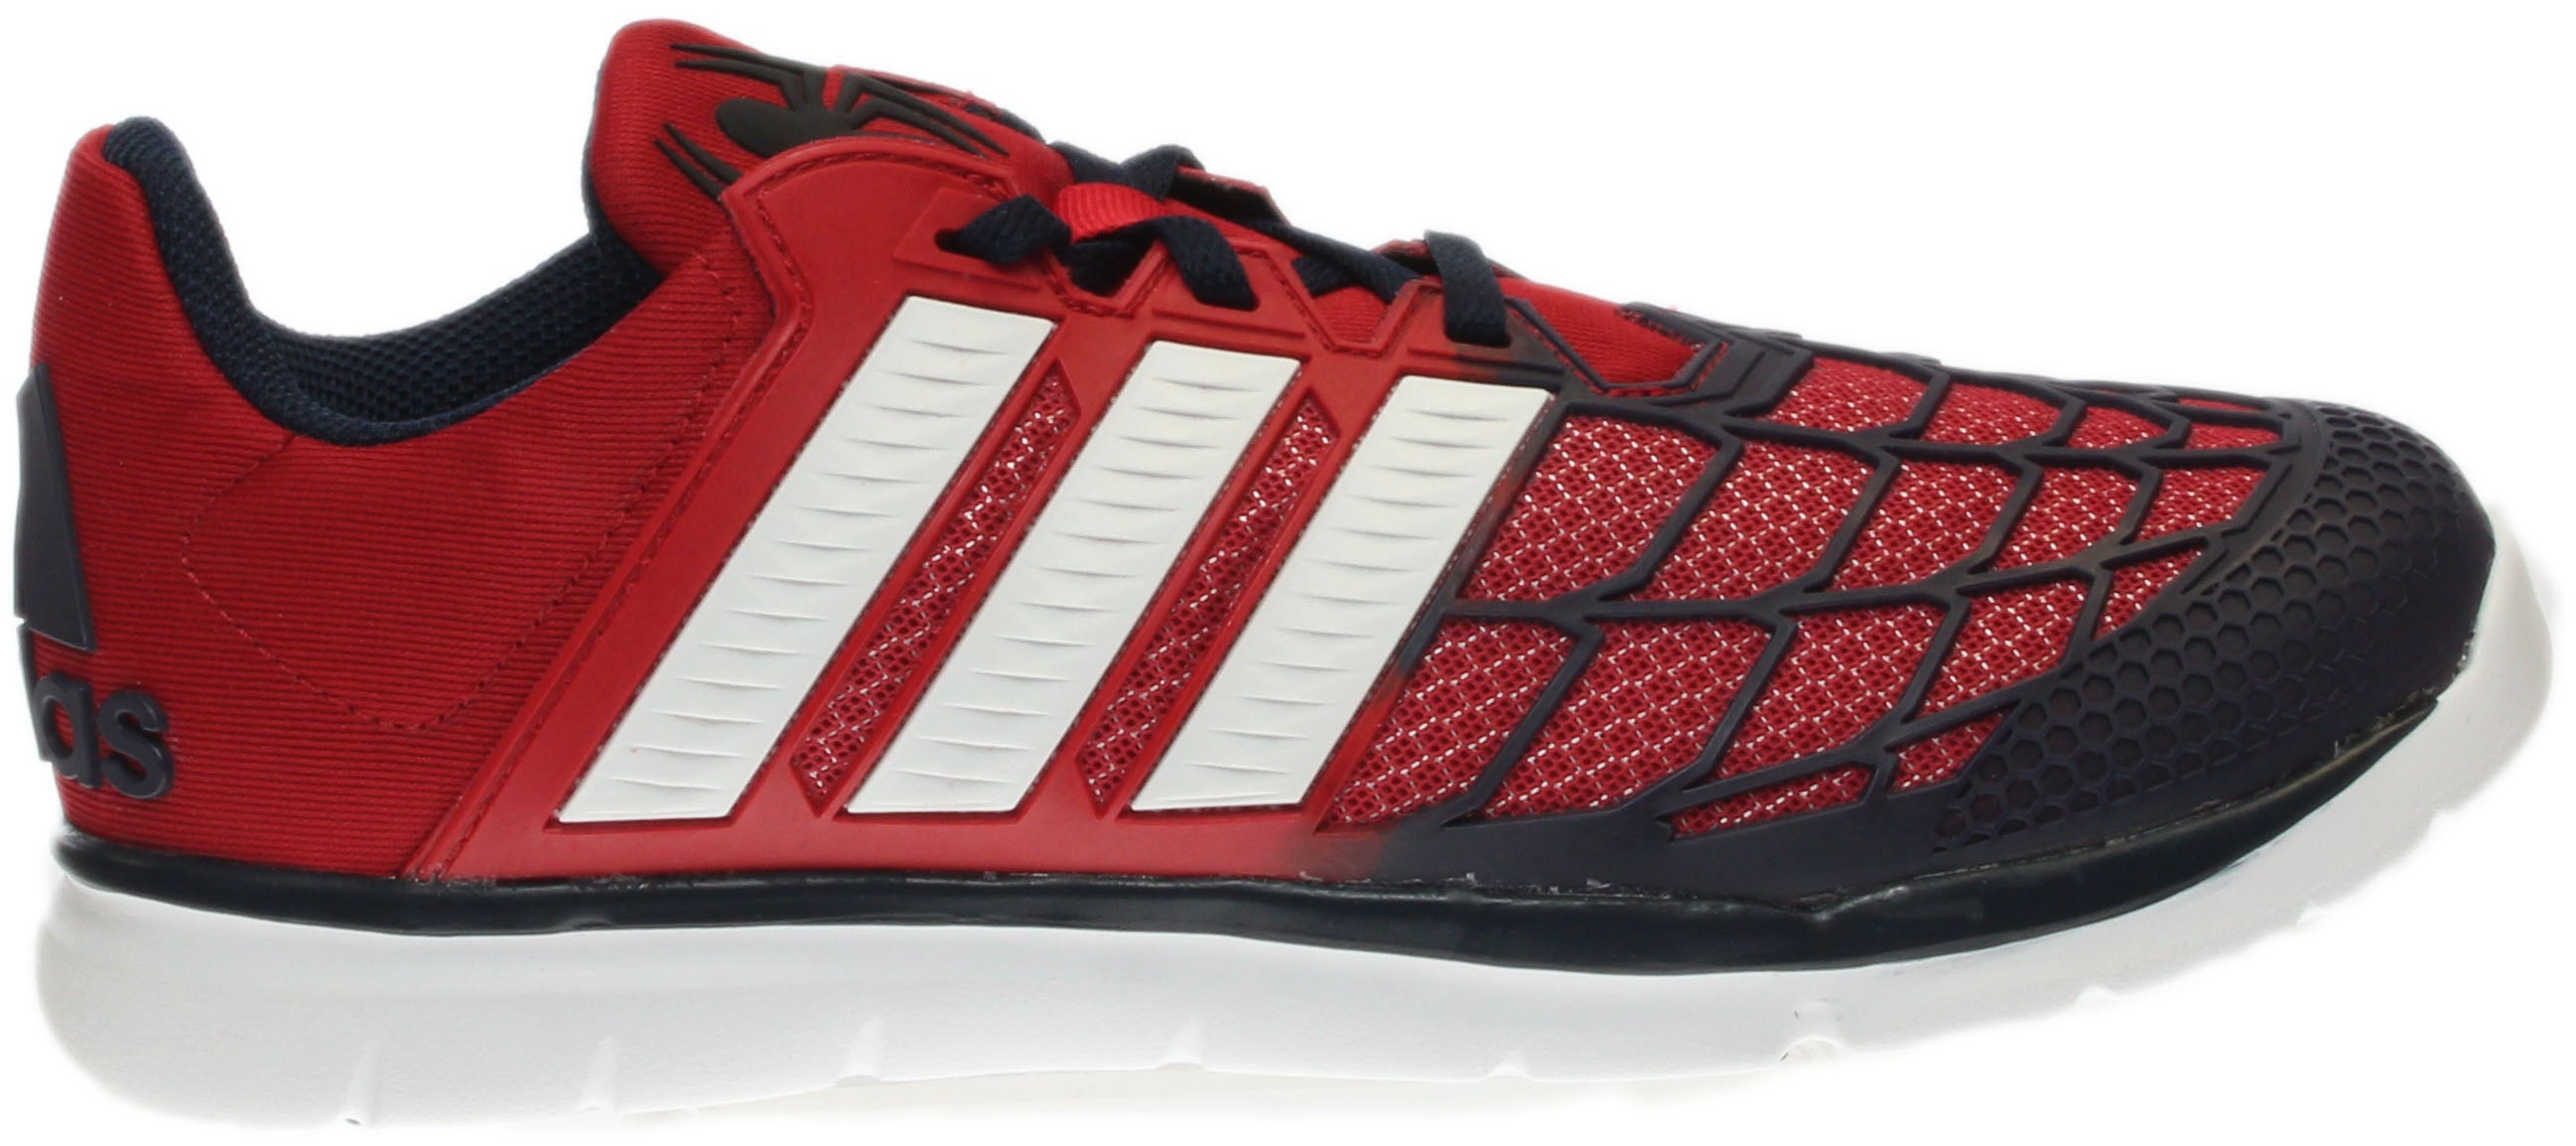 adidas Marvel Spider-Man